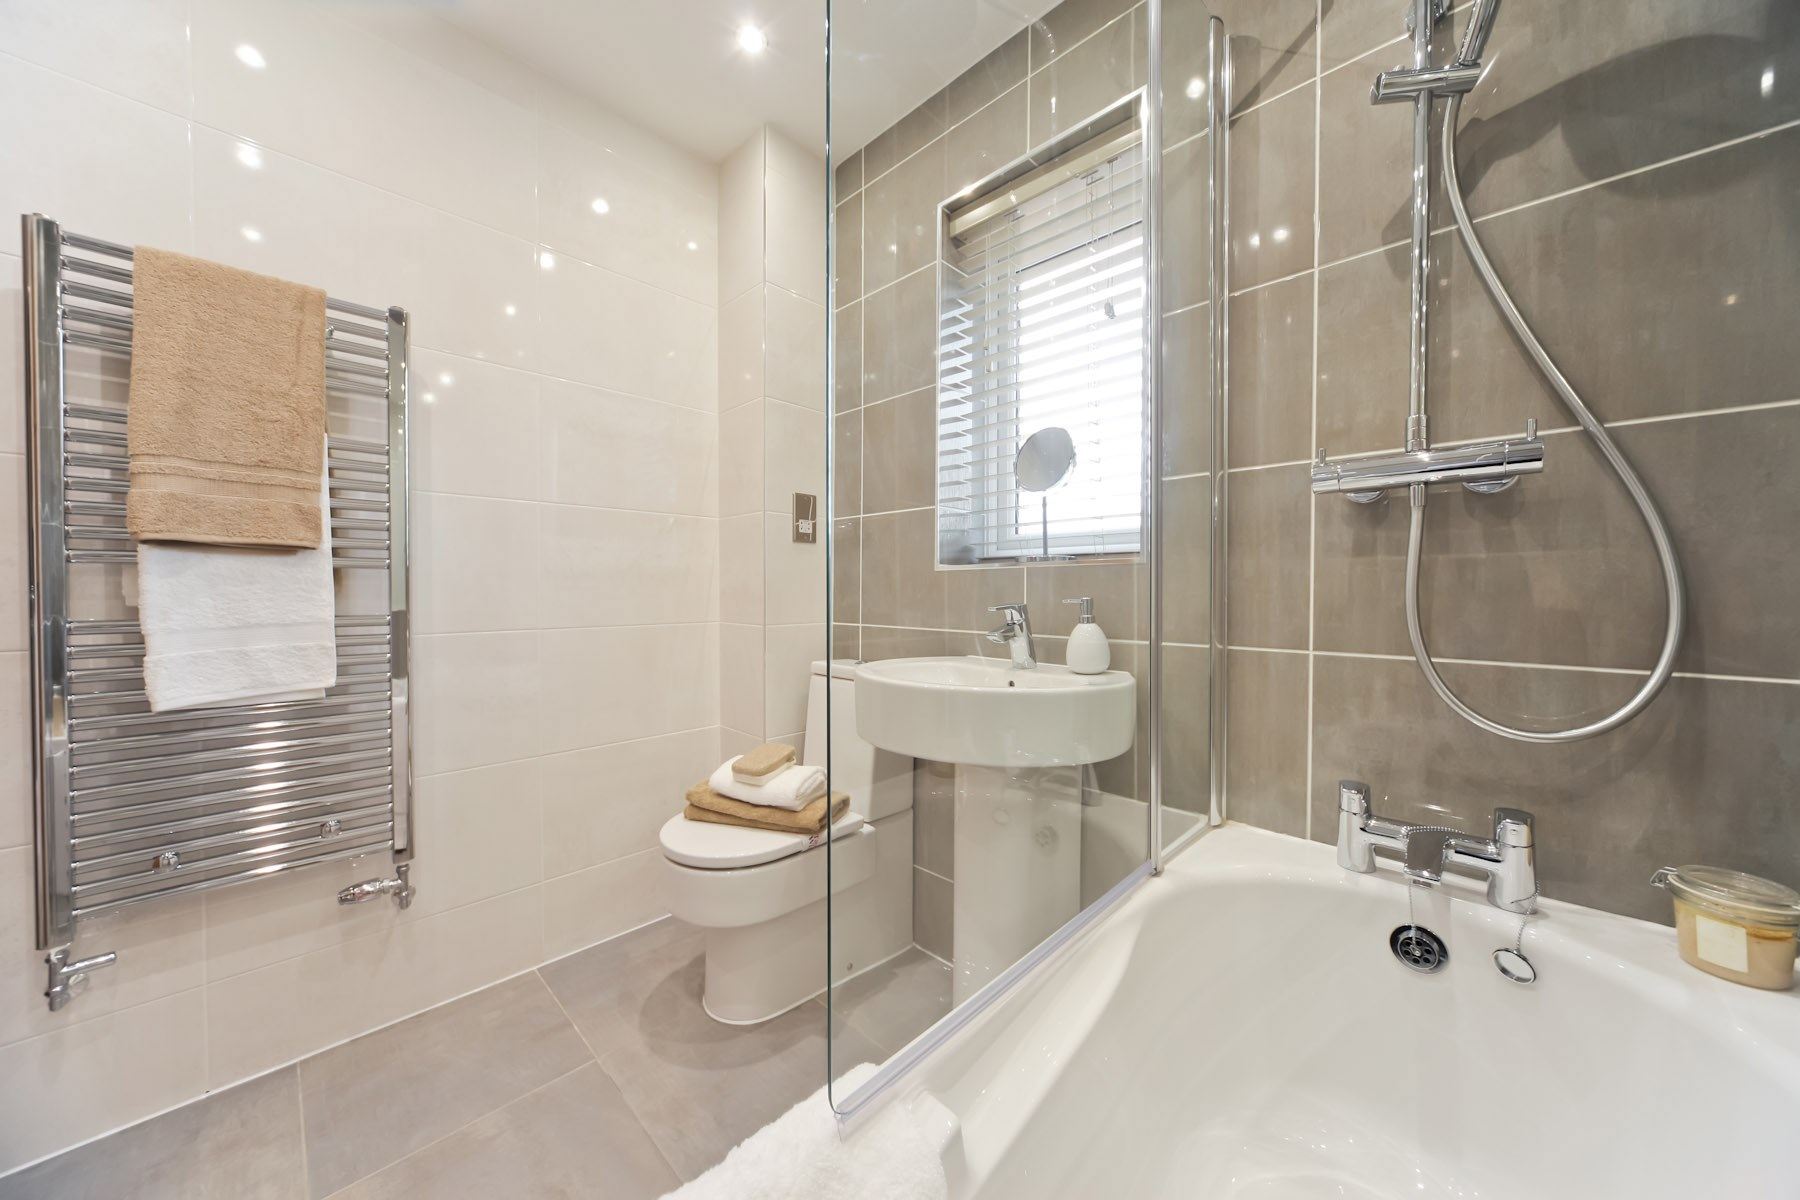 024_BH_Downham_Bathroom